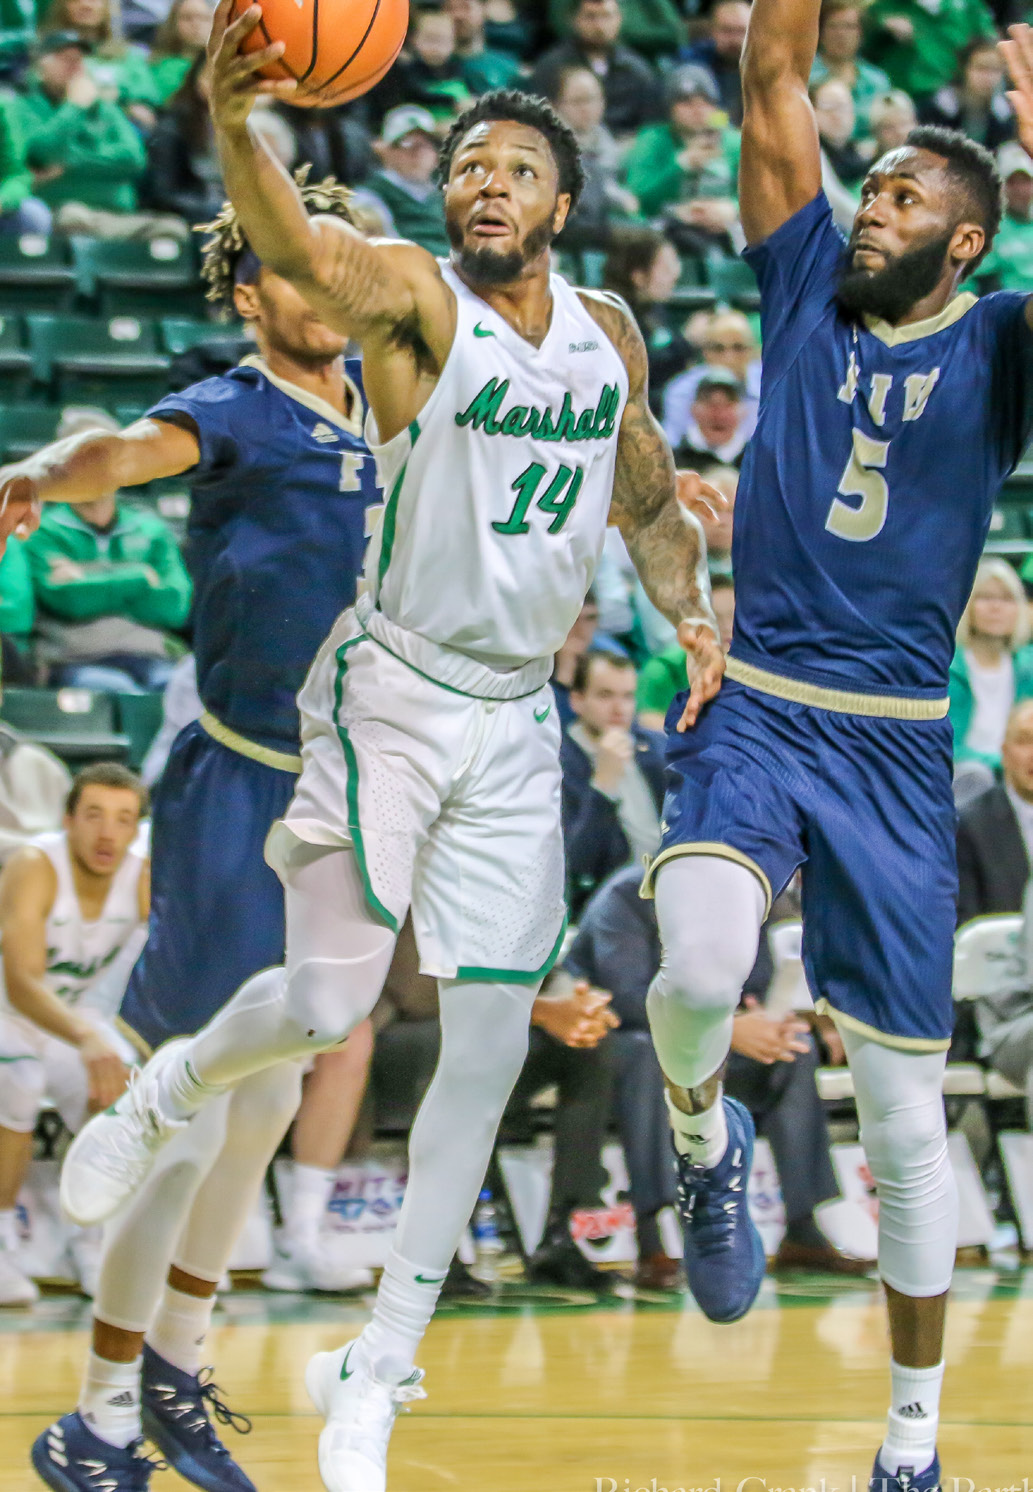 Marshall guard C.J. Burks (14) drives past FIU guard Eric Lockett in a game during the 2017-18 season.